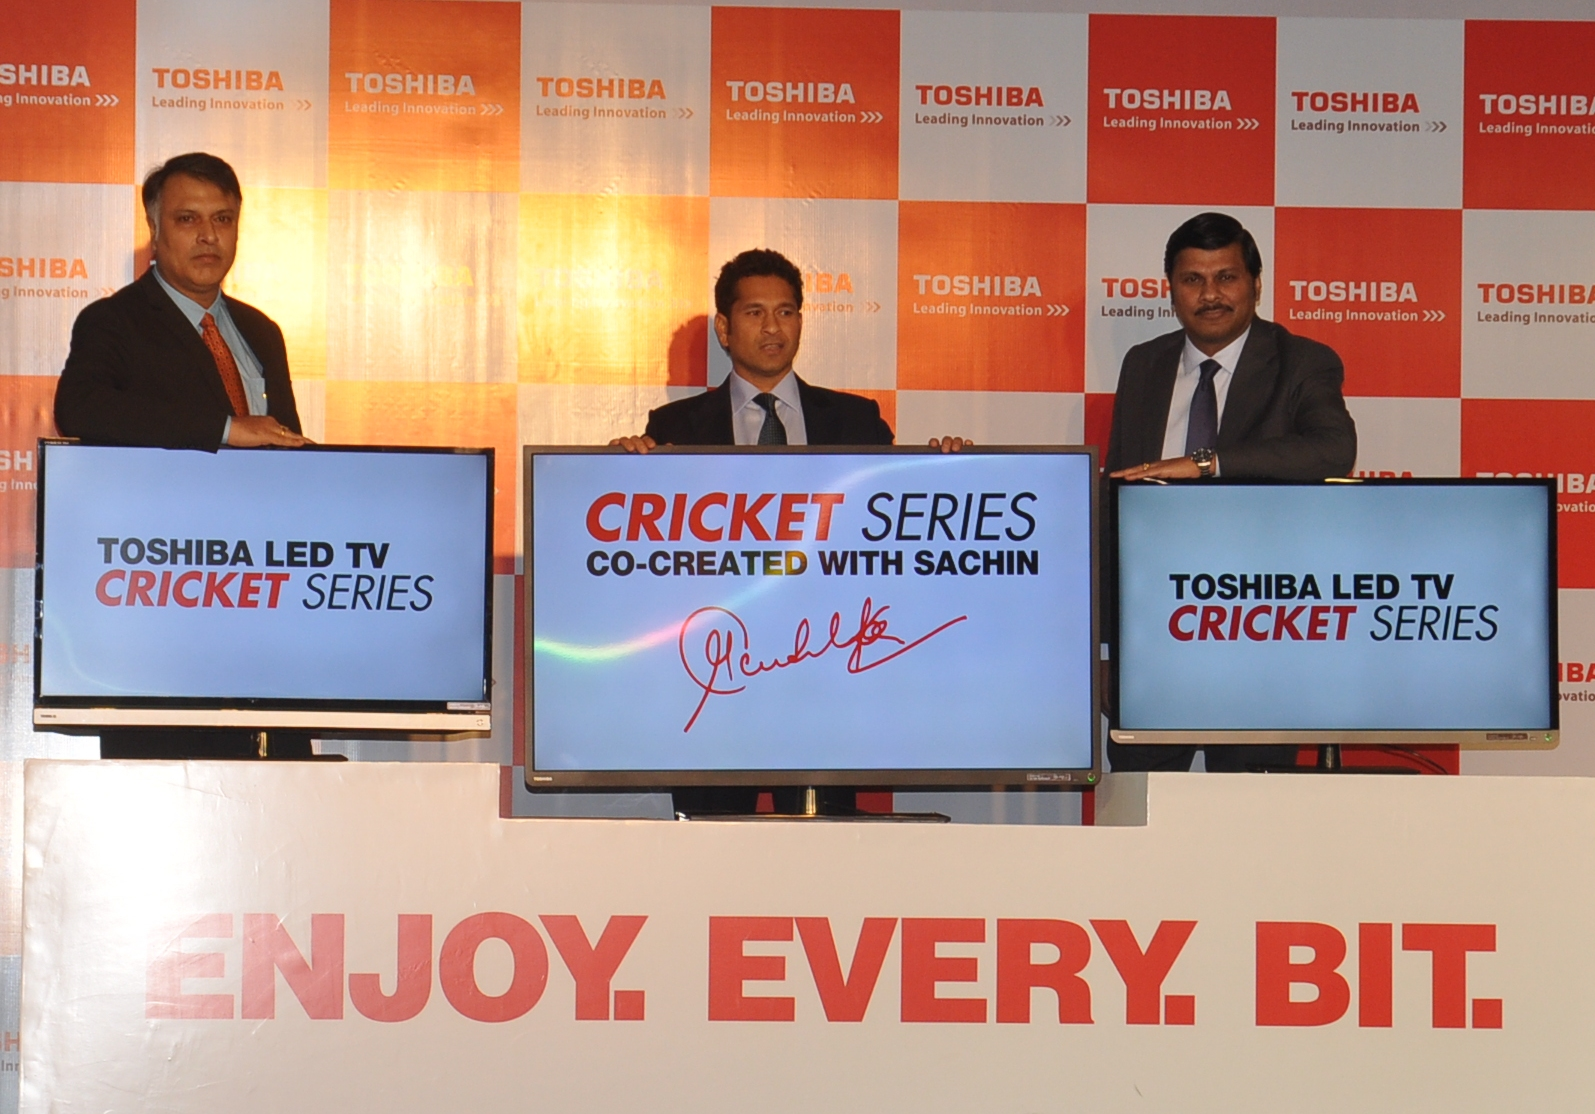 L-R Mr. Amitabh Tiwari, VP-Sales & Marketing, Consumer Products, Toshiba-DS Division, Sachin Tendulkar, Mr. Sanjay Warke,  Country Head Toshiba India - DS Division, launching Worlds 1st Cri